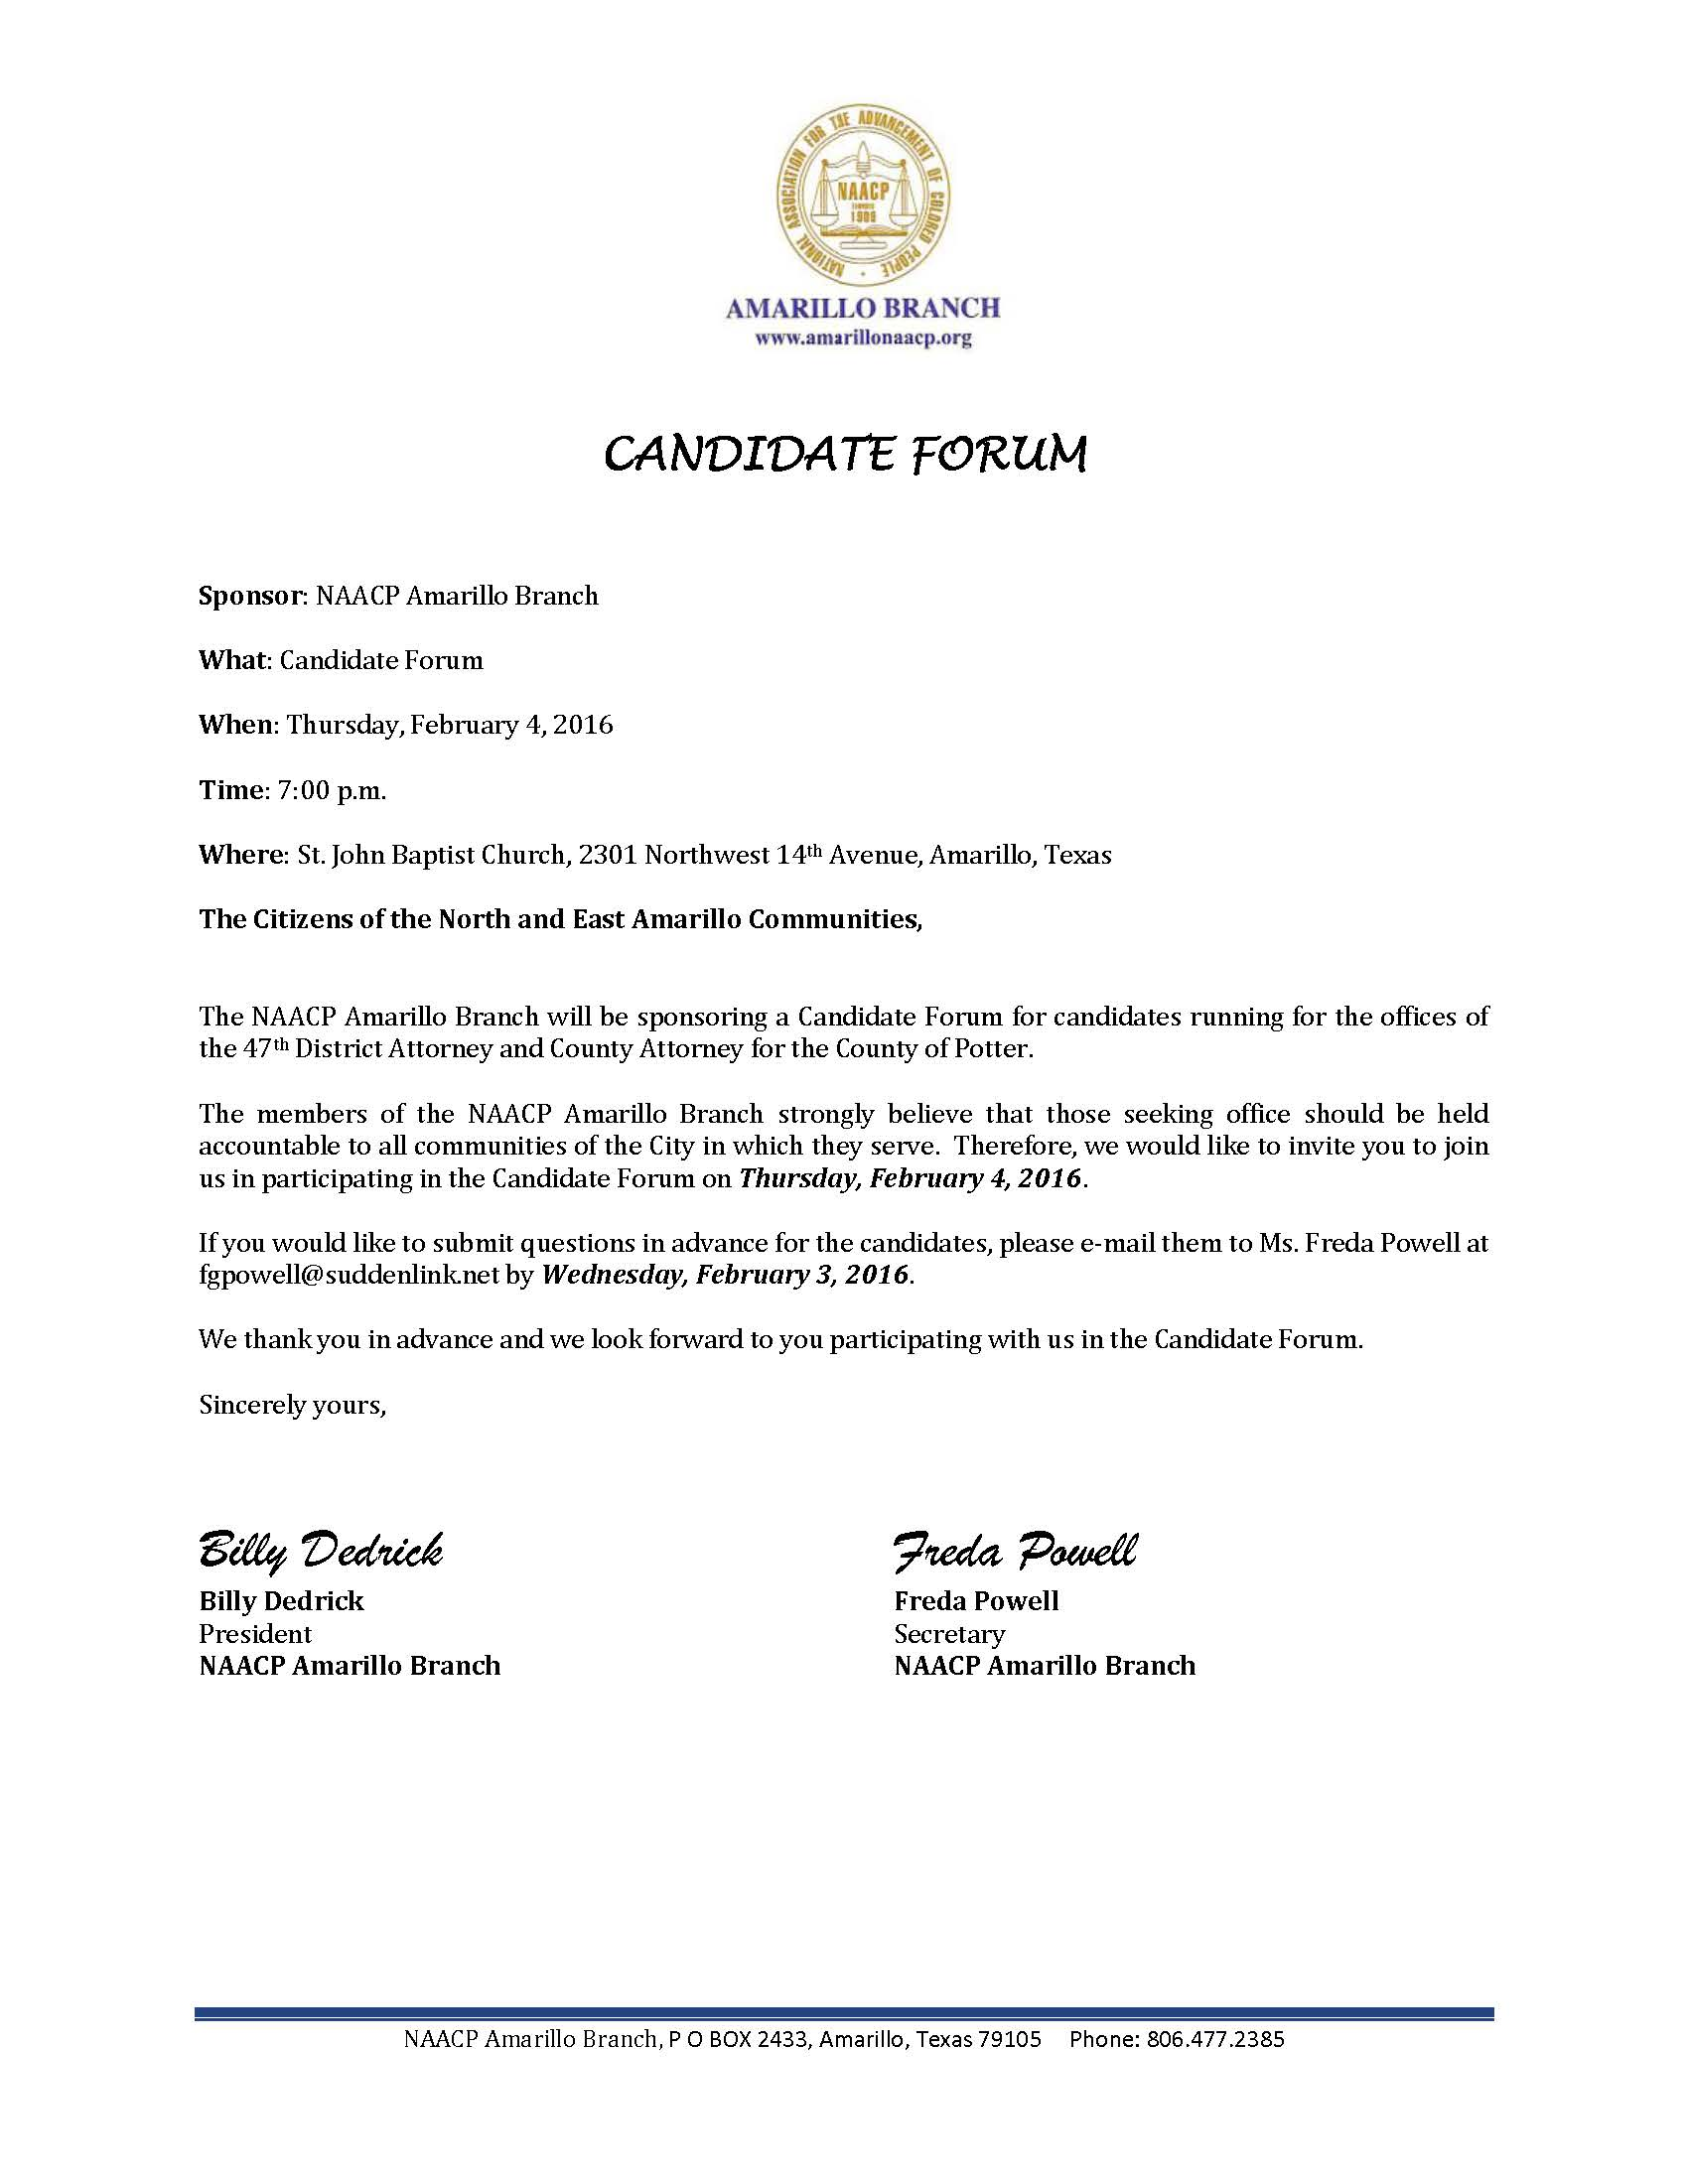 Amarillo Branch NAACP Candidate Forum--Churches 02-04-2016